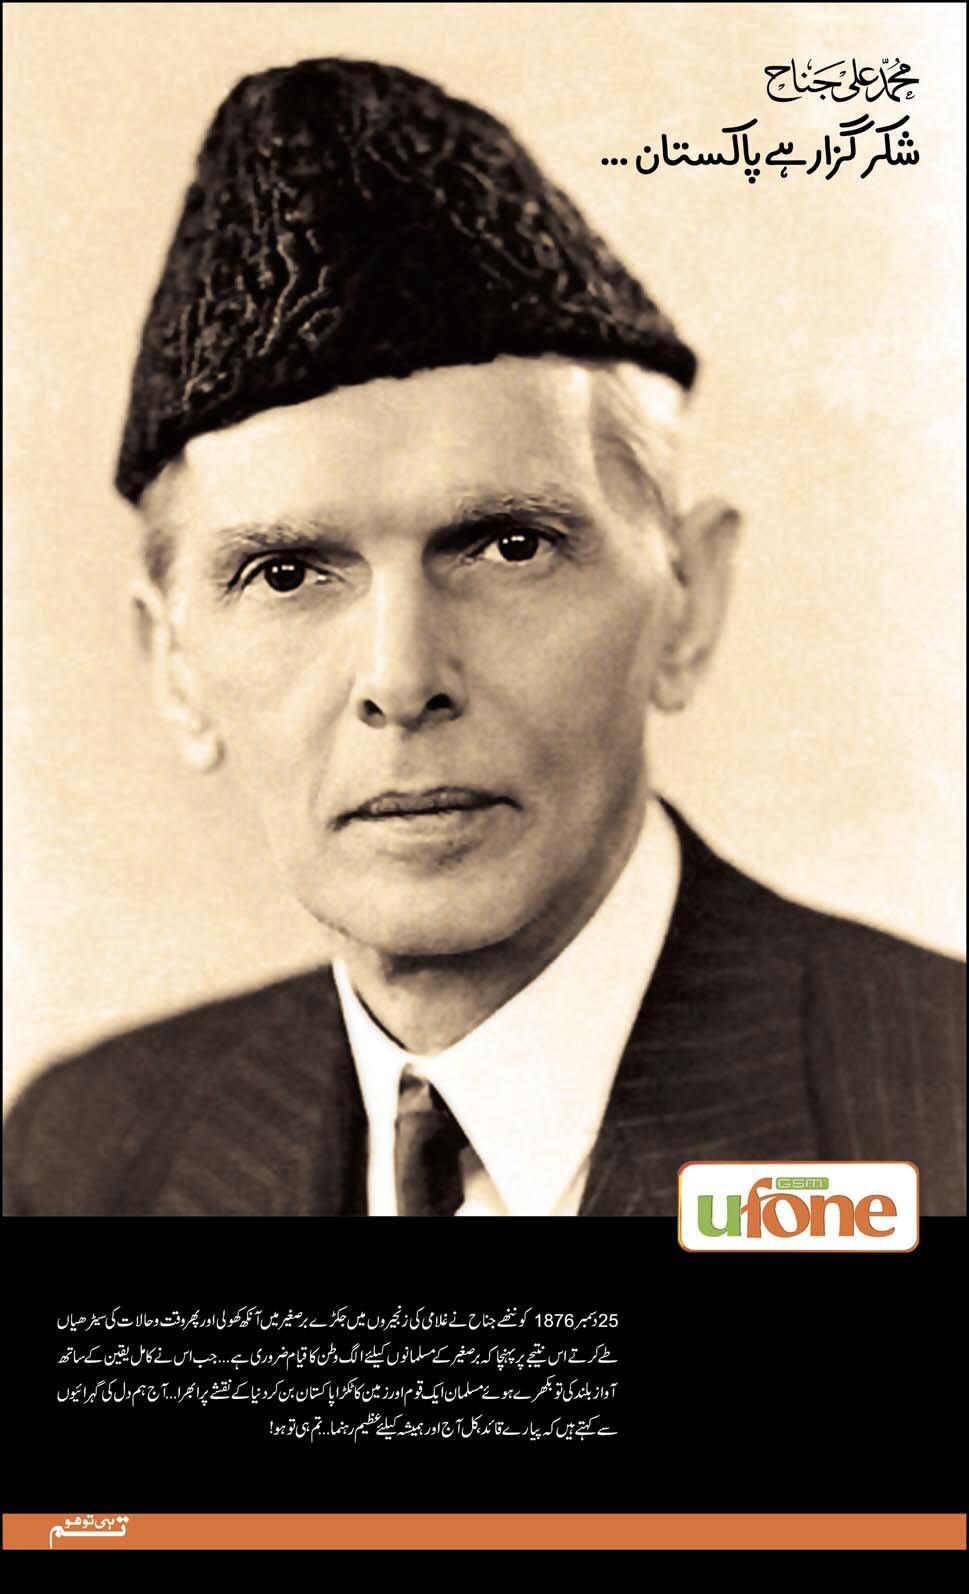 speech on quaid e azam It was the speech in which muhammad ali jinnah set out his vision for the  nascent pakistan, a nation he hoped would be prosperous, tolerant.